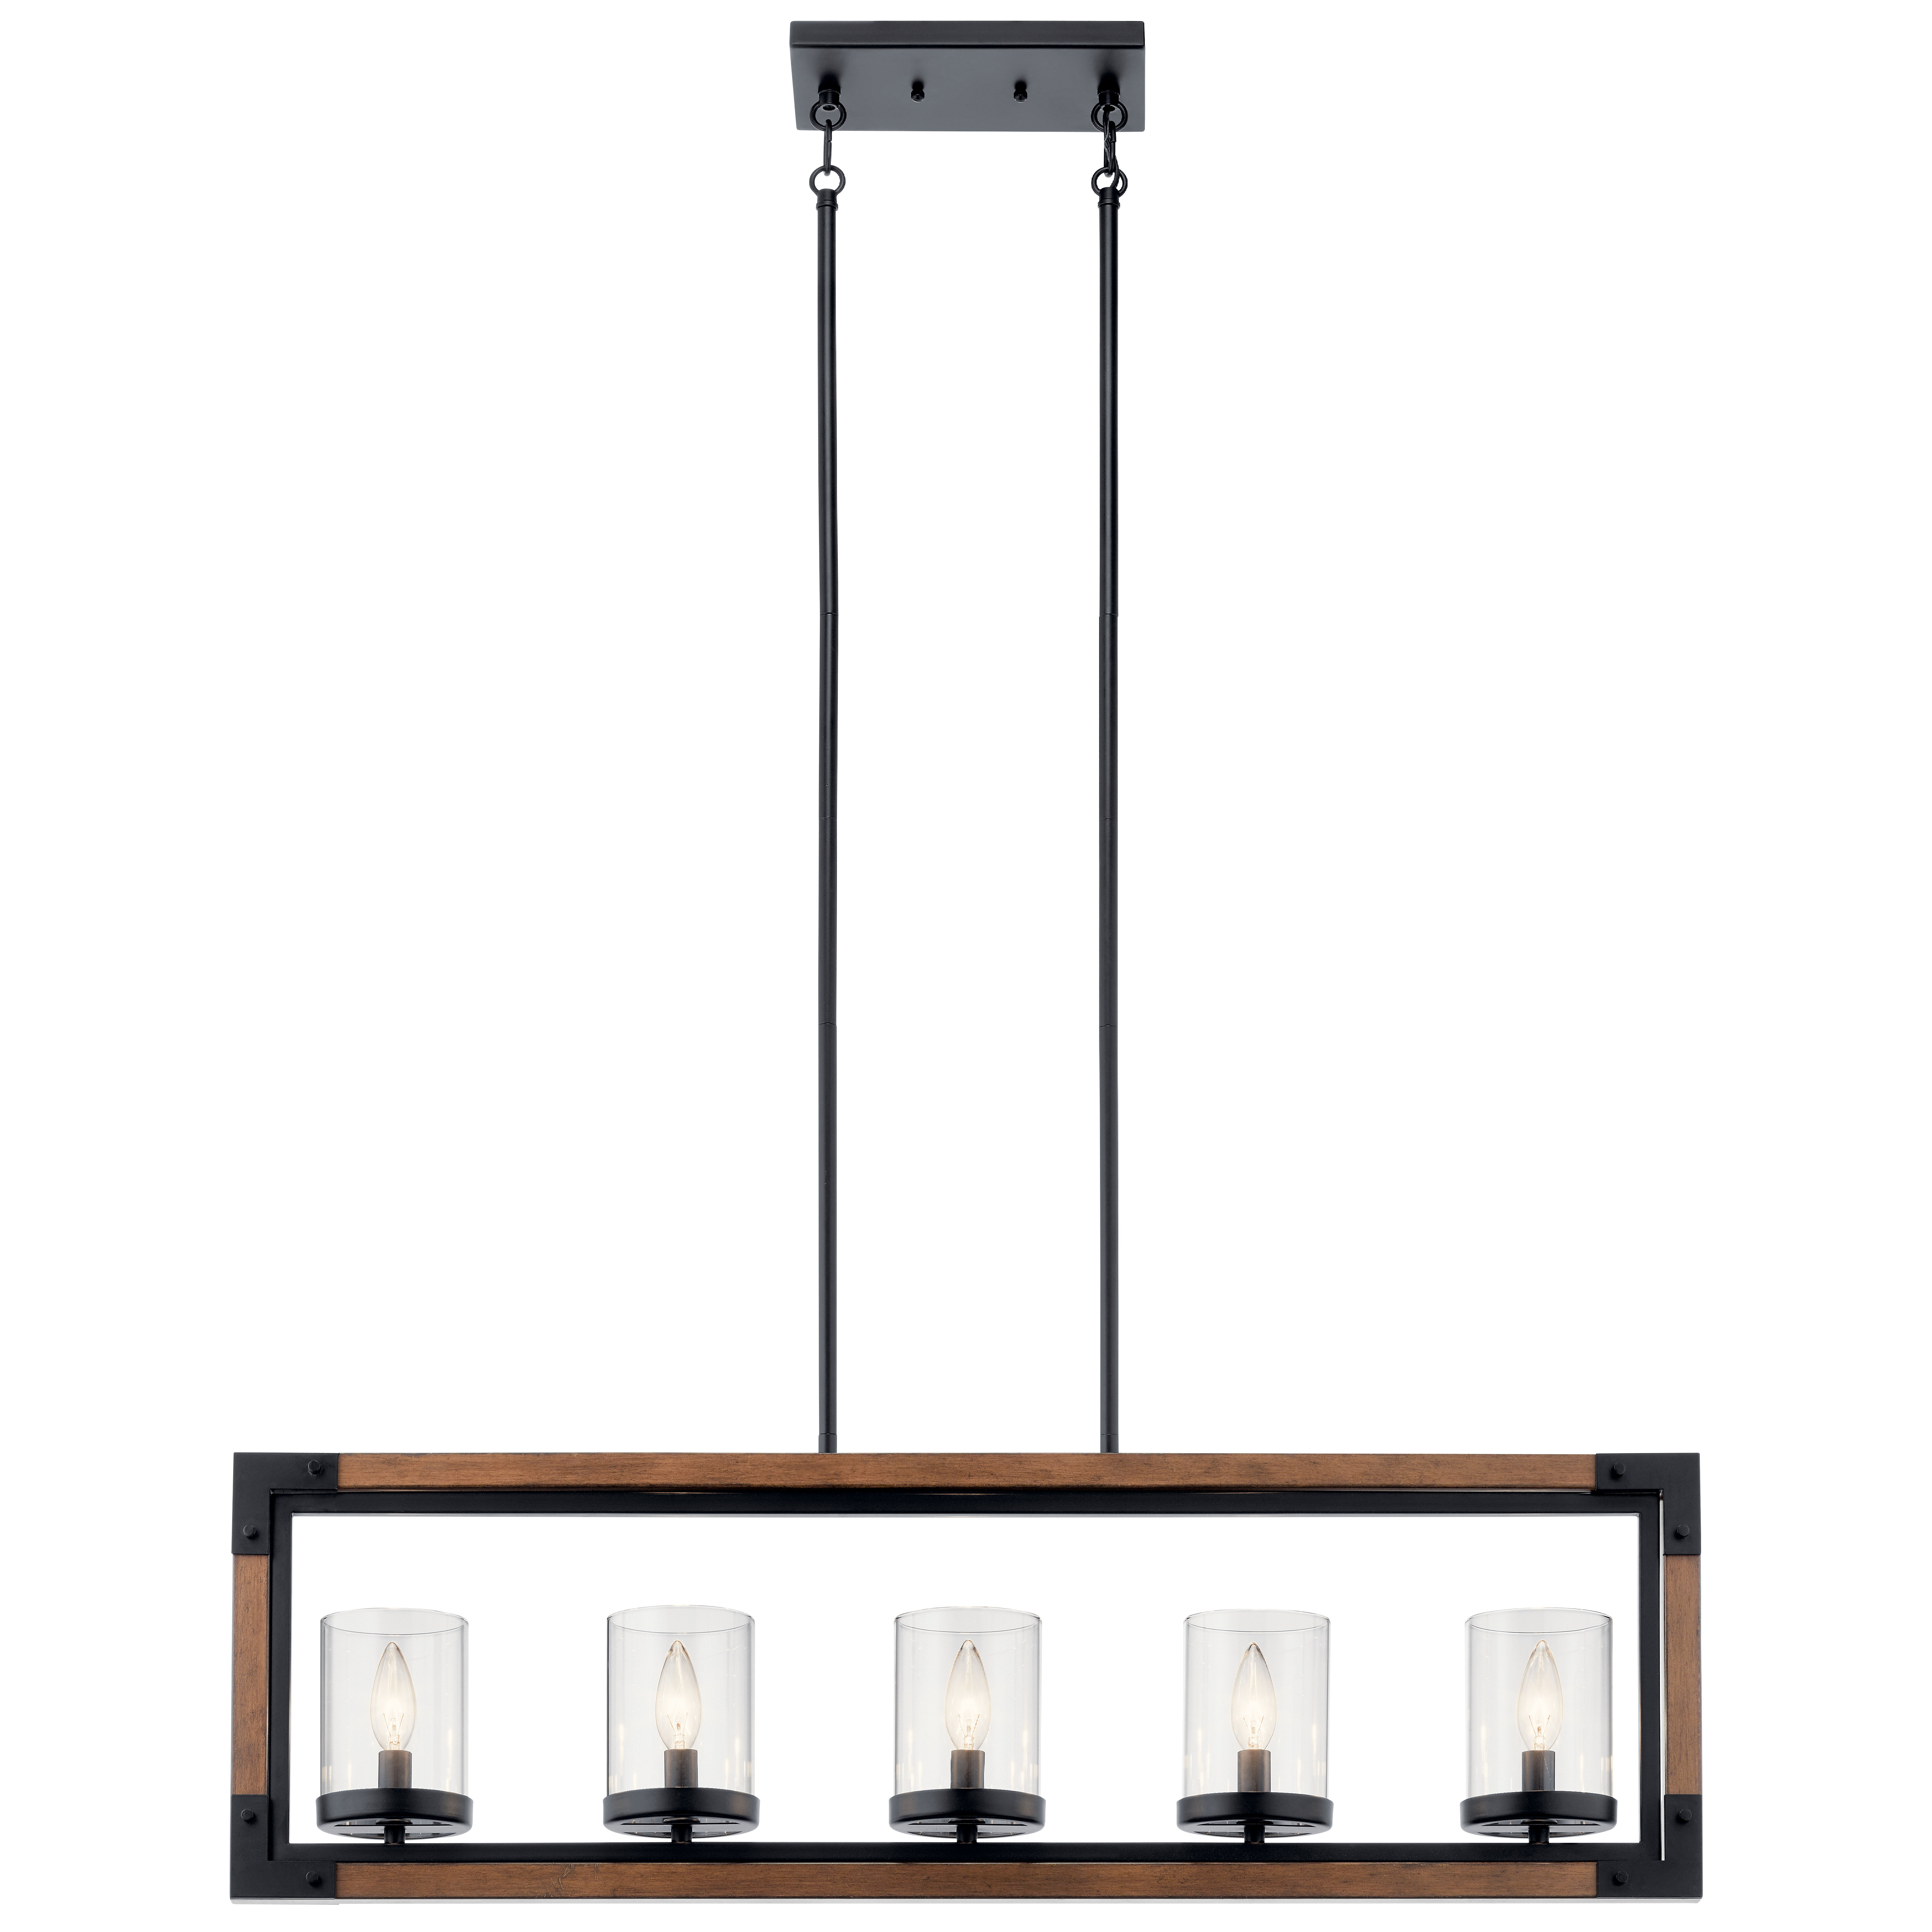 Hinerman 5 Light Kitchen Island Pendants For Best And Newest Moro Linear 5 Light Kitchen Island Pendant (Gallery 14 of 20)